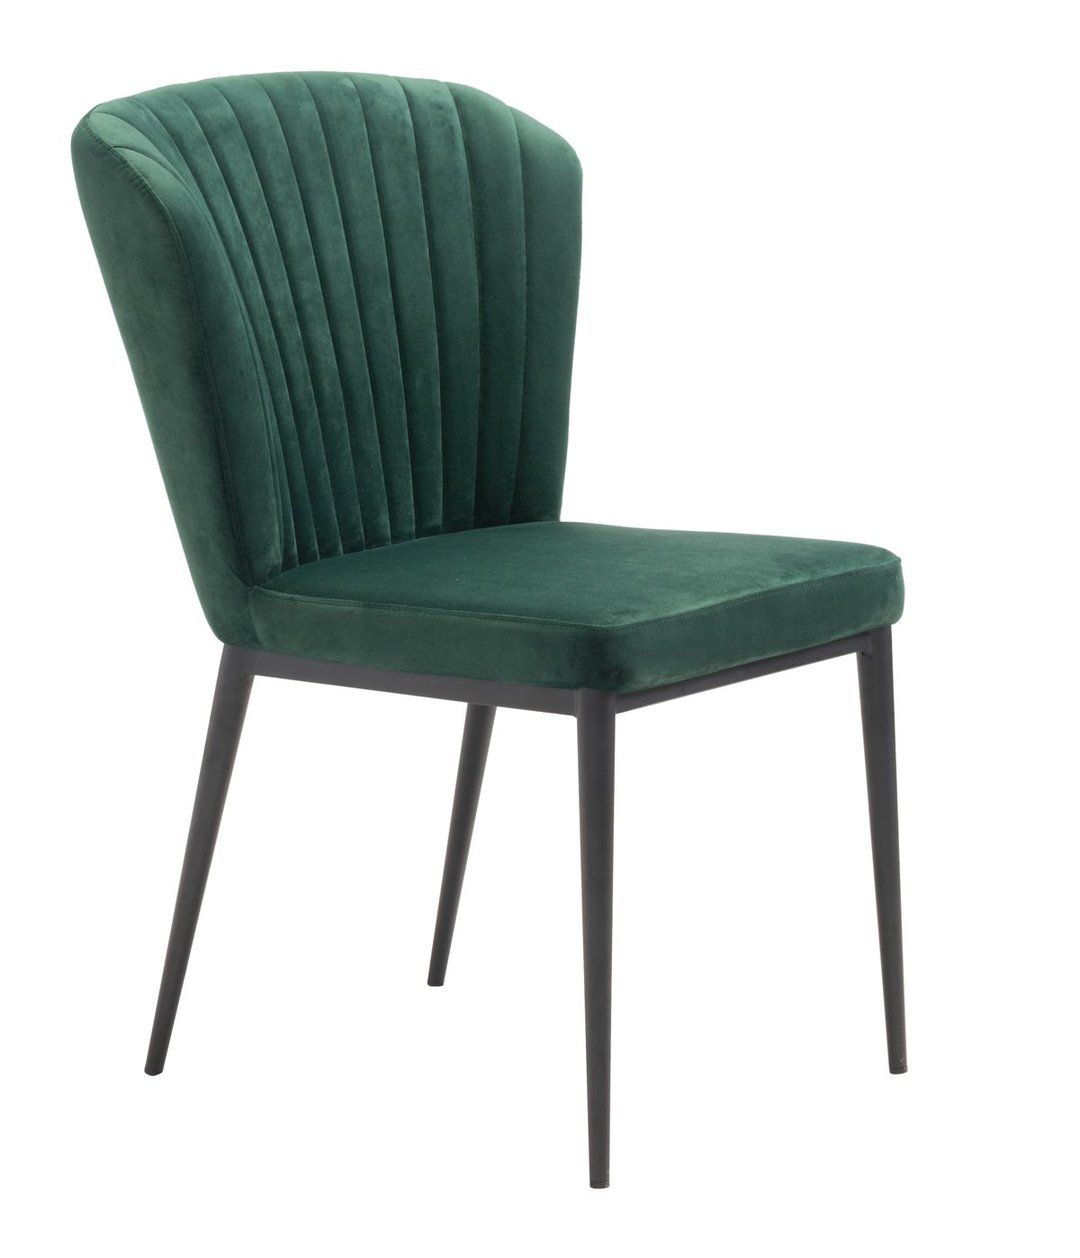 Green Velvet Romo Dining Chair With Black Stainless Steel Legs